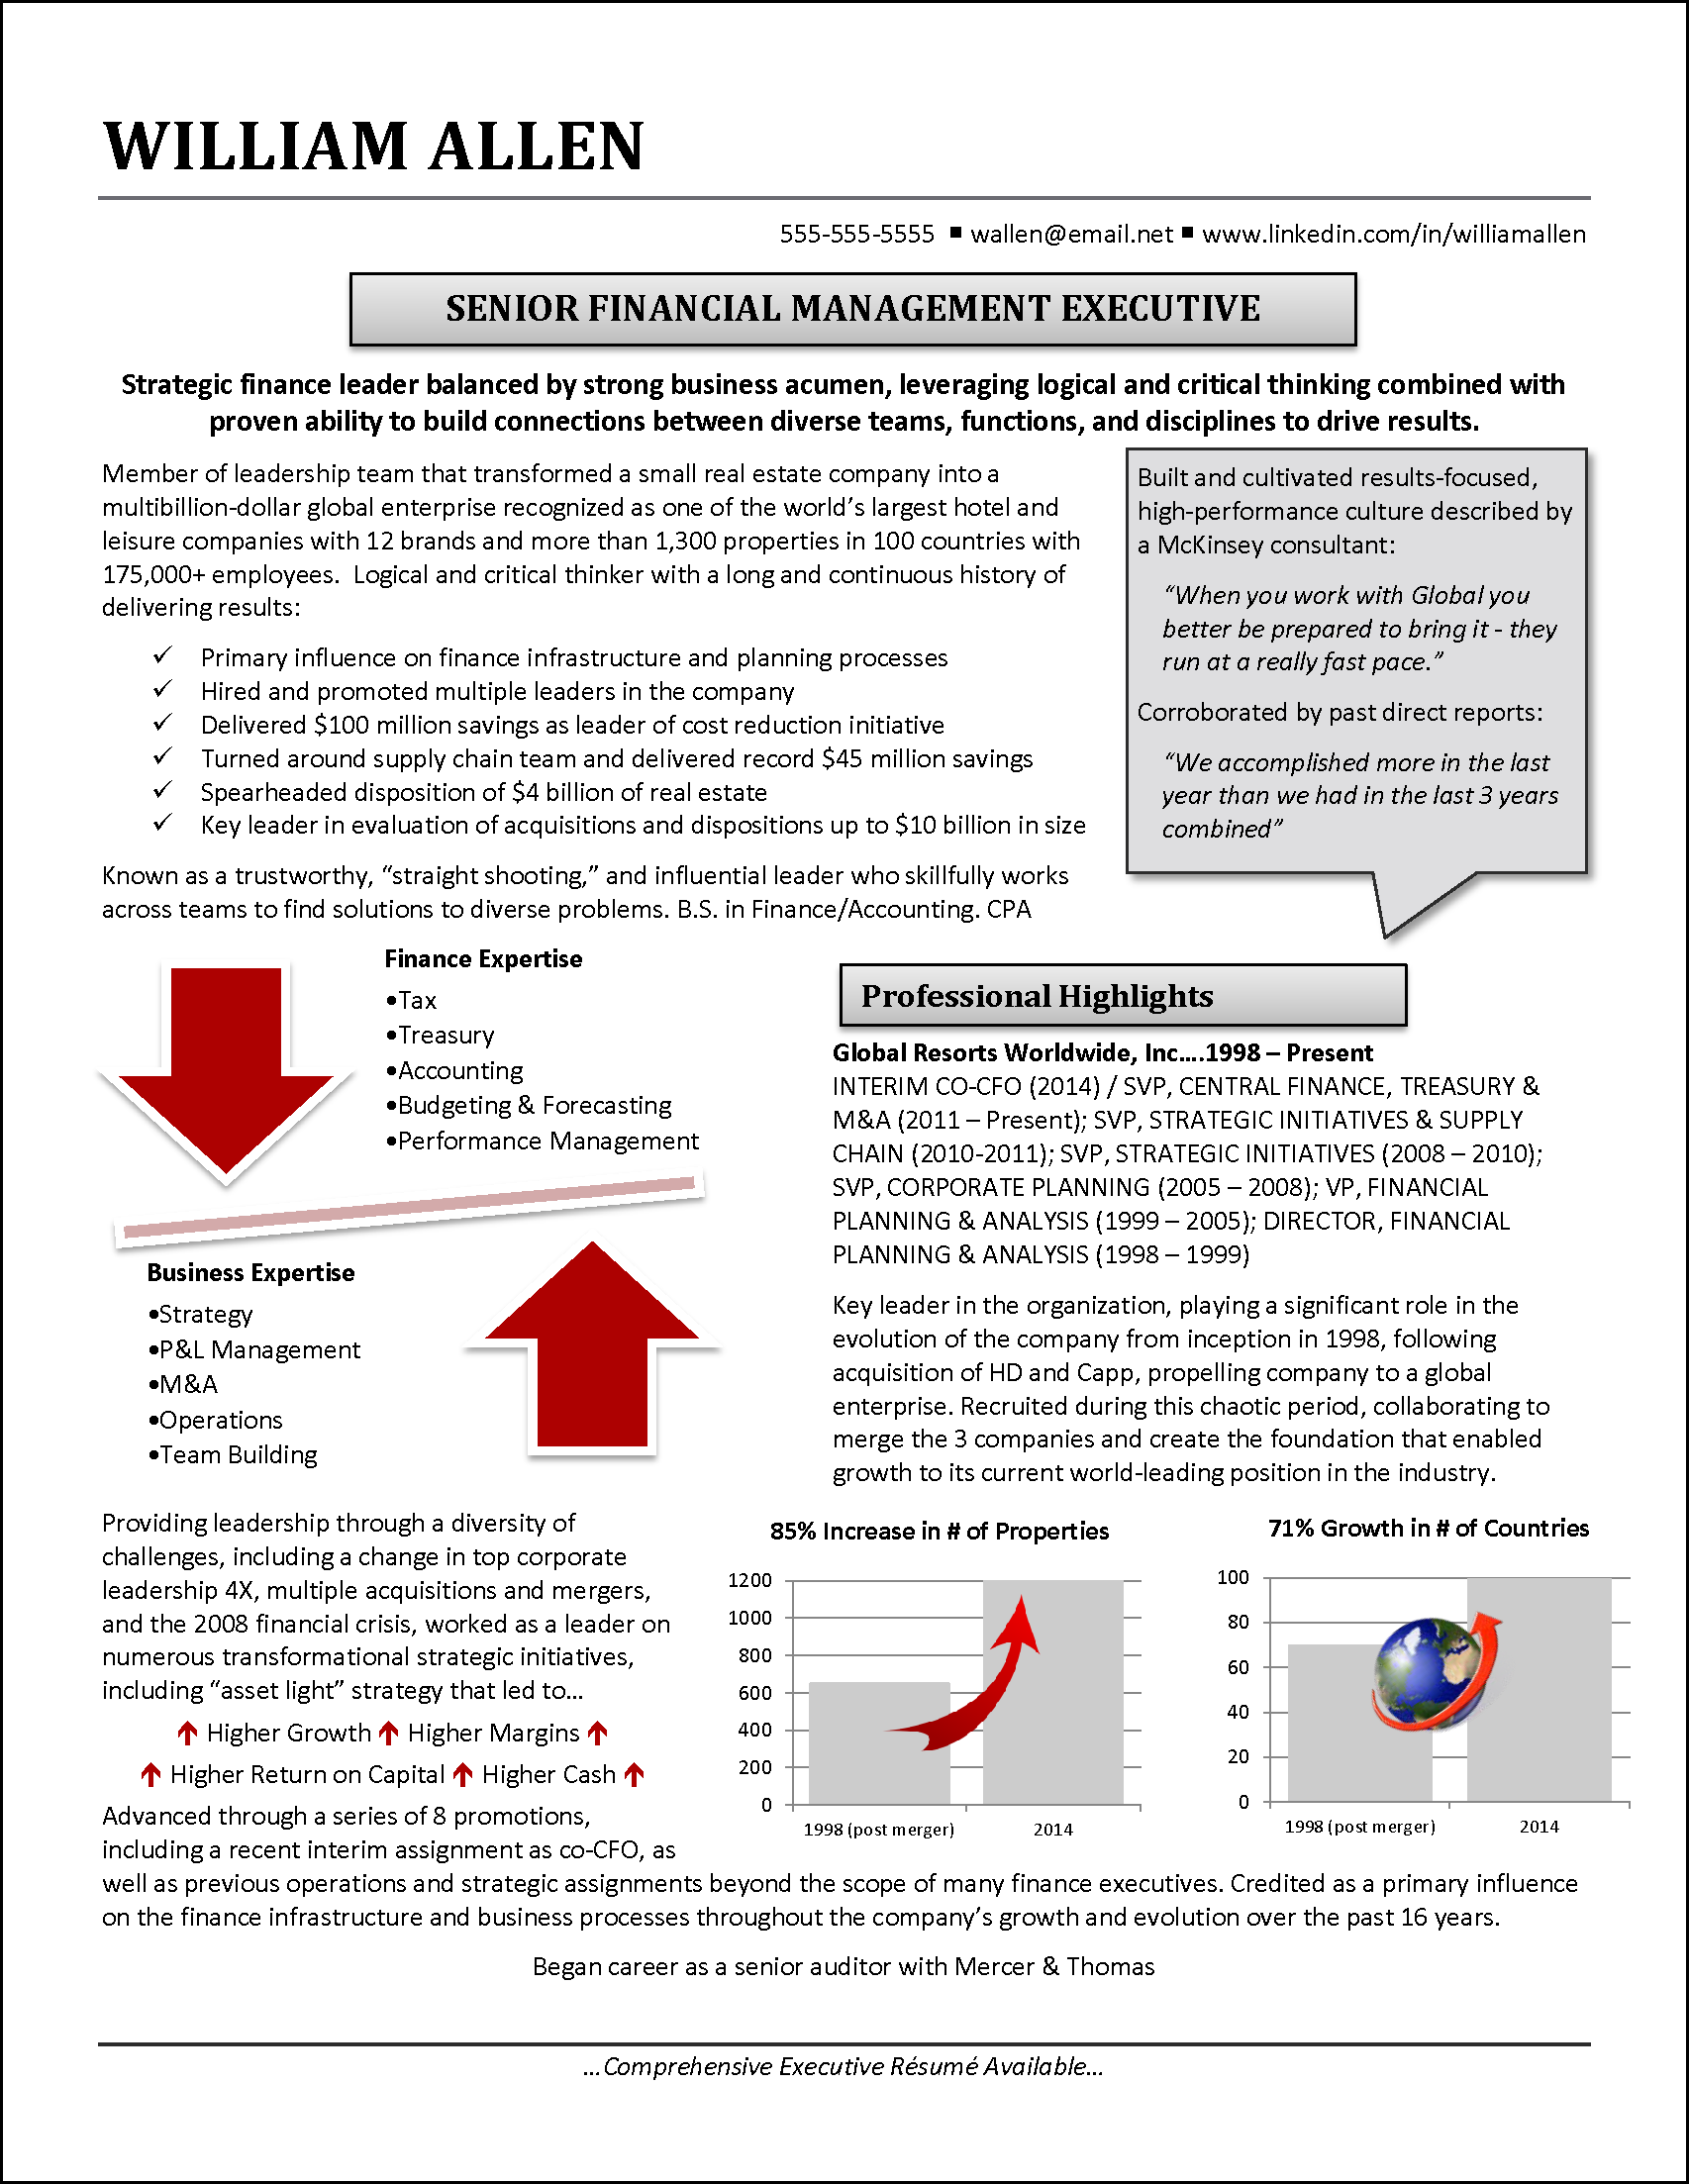 infographic resume example for financial executive resume